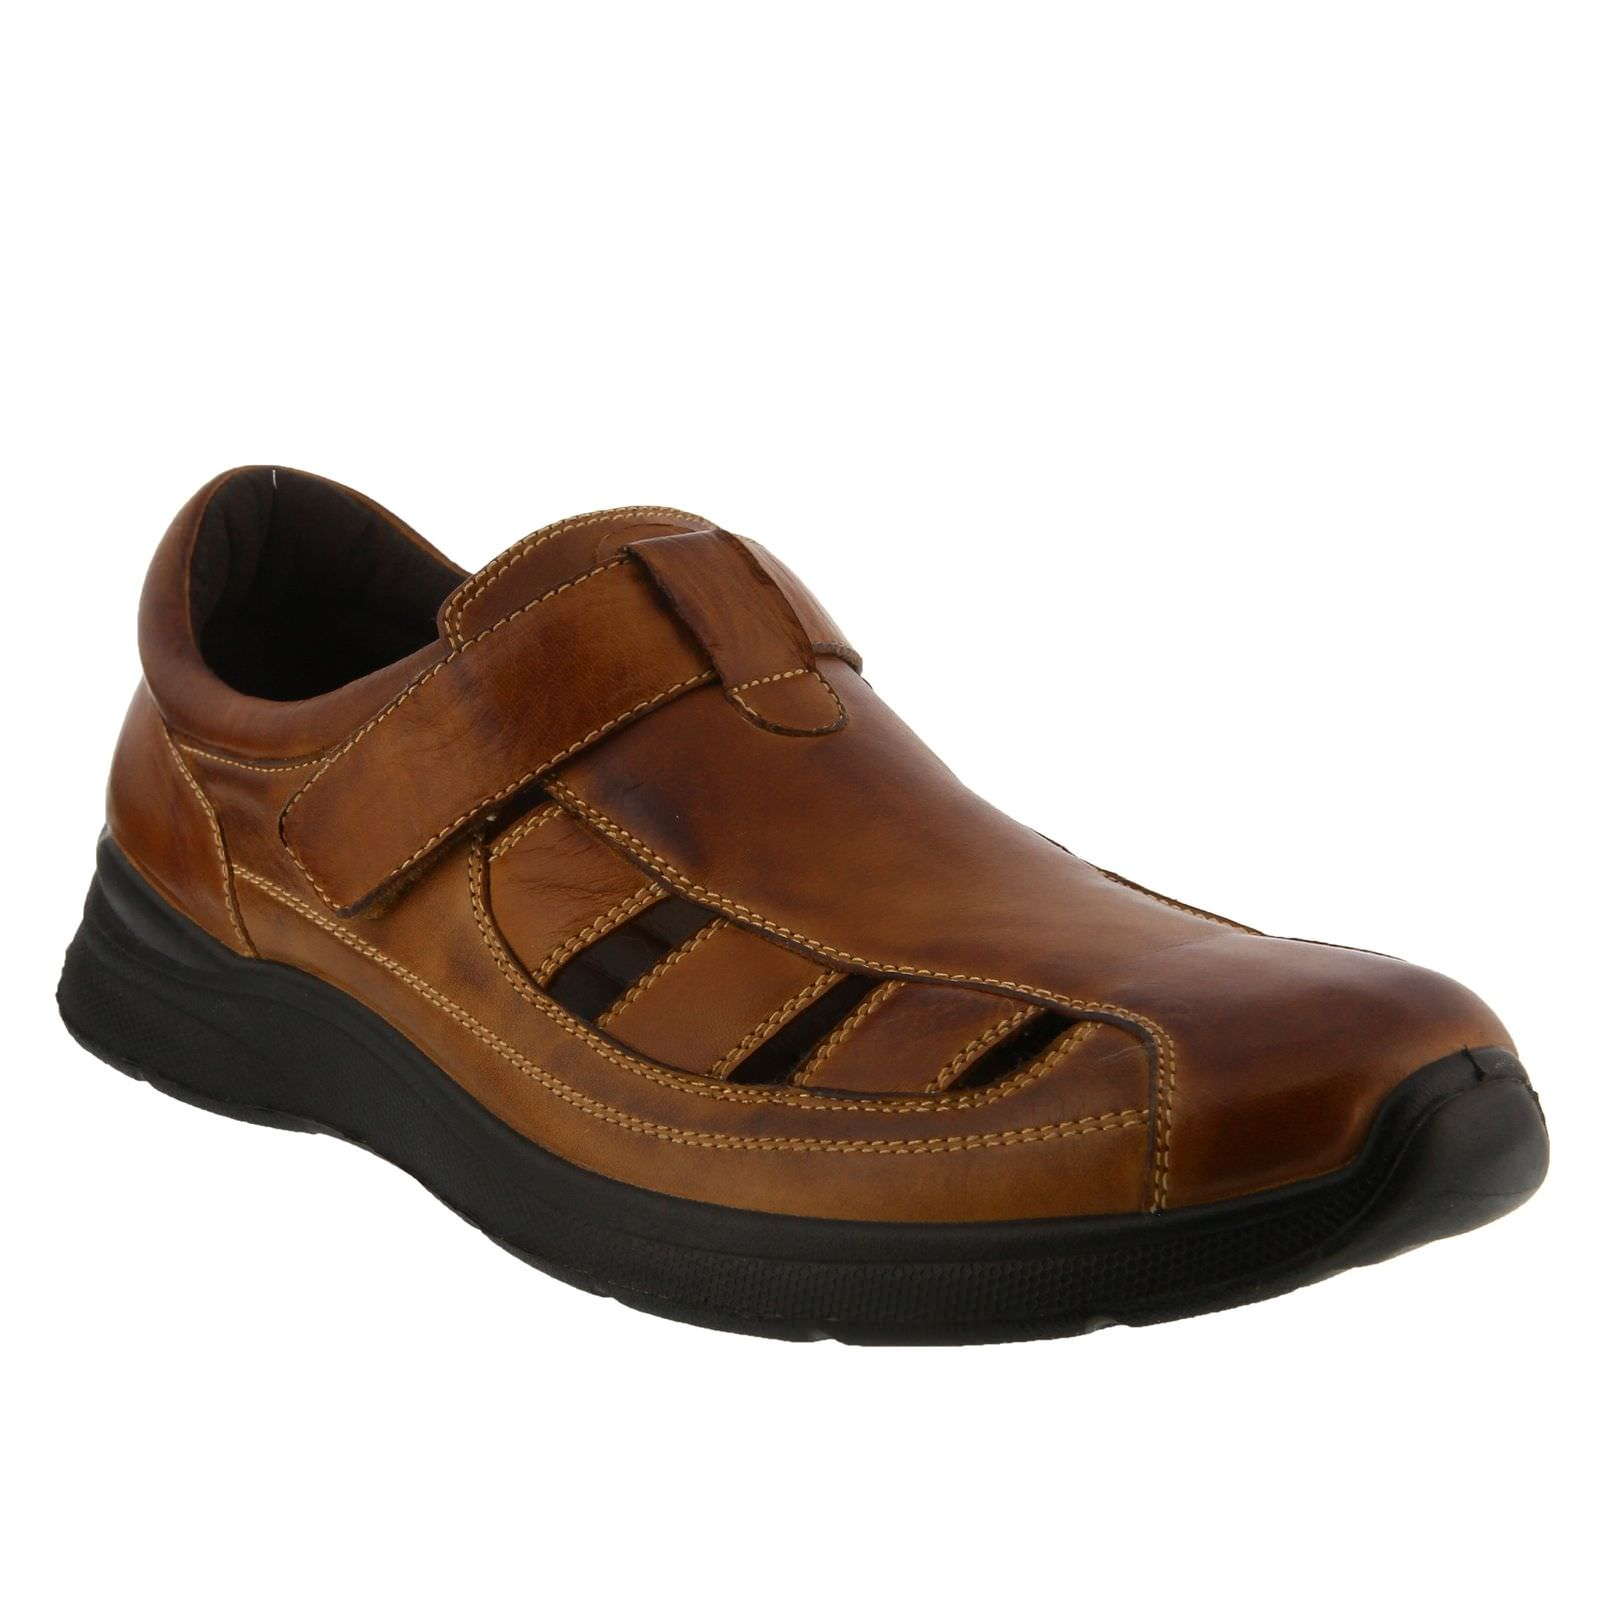 Spring Step MARK Mens Brown Leather Fisherman Sandal Shoes by